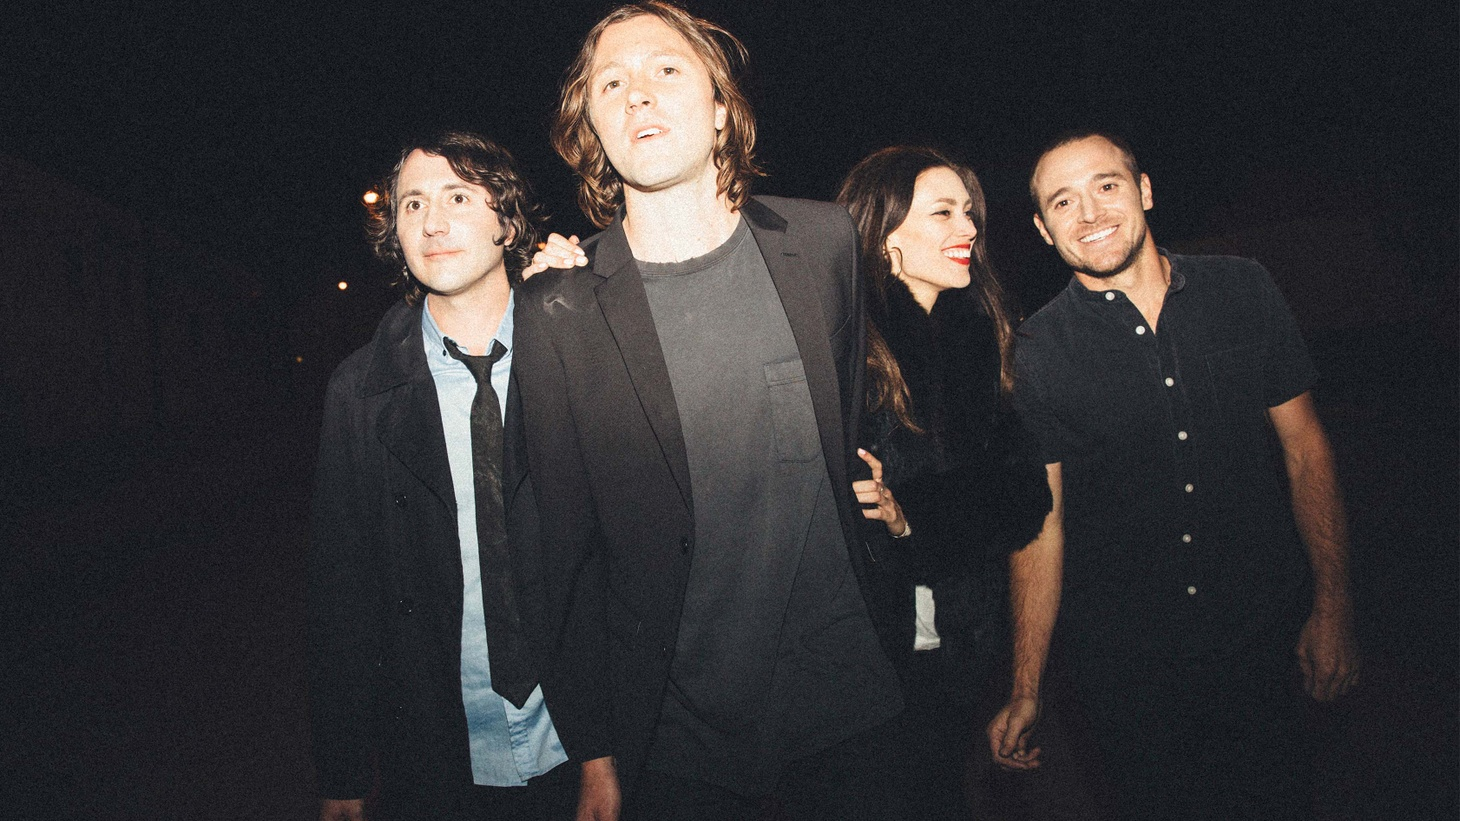 """LA-based band Family of the Year have been around for a number of years now, but they had a really big boost with the appearance of their song """"Hero"""" in the 2014 Oscar-nominated film, Boyhood. The song became something of an international sensation, but sooner or later the rollercoaster stops, and the question becomes how to follow up."""